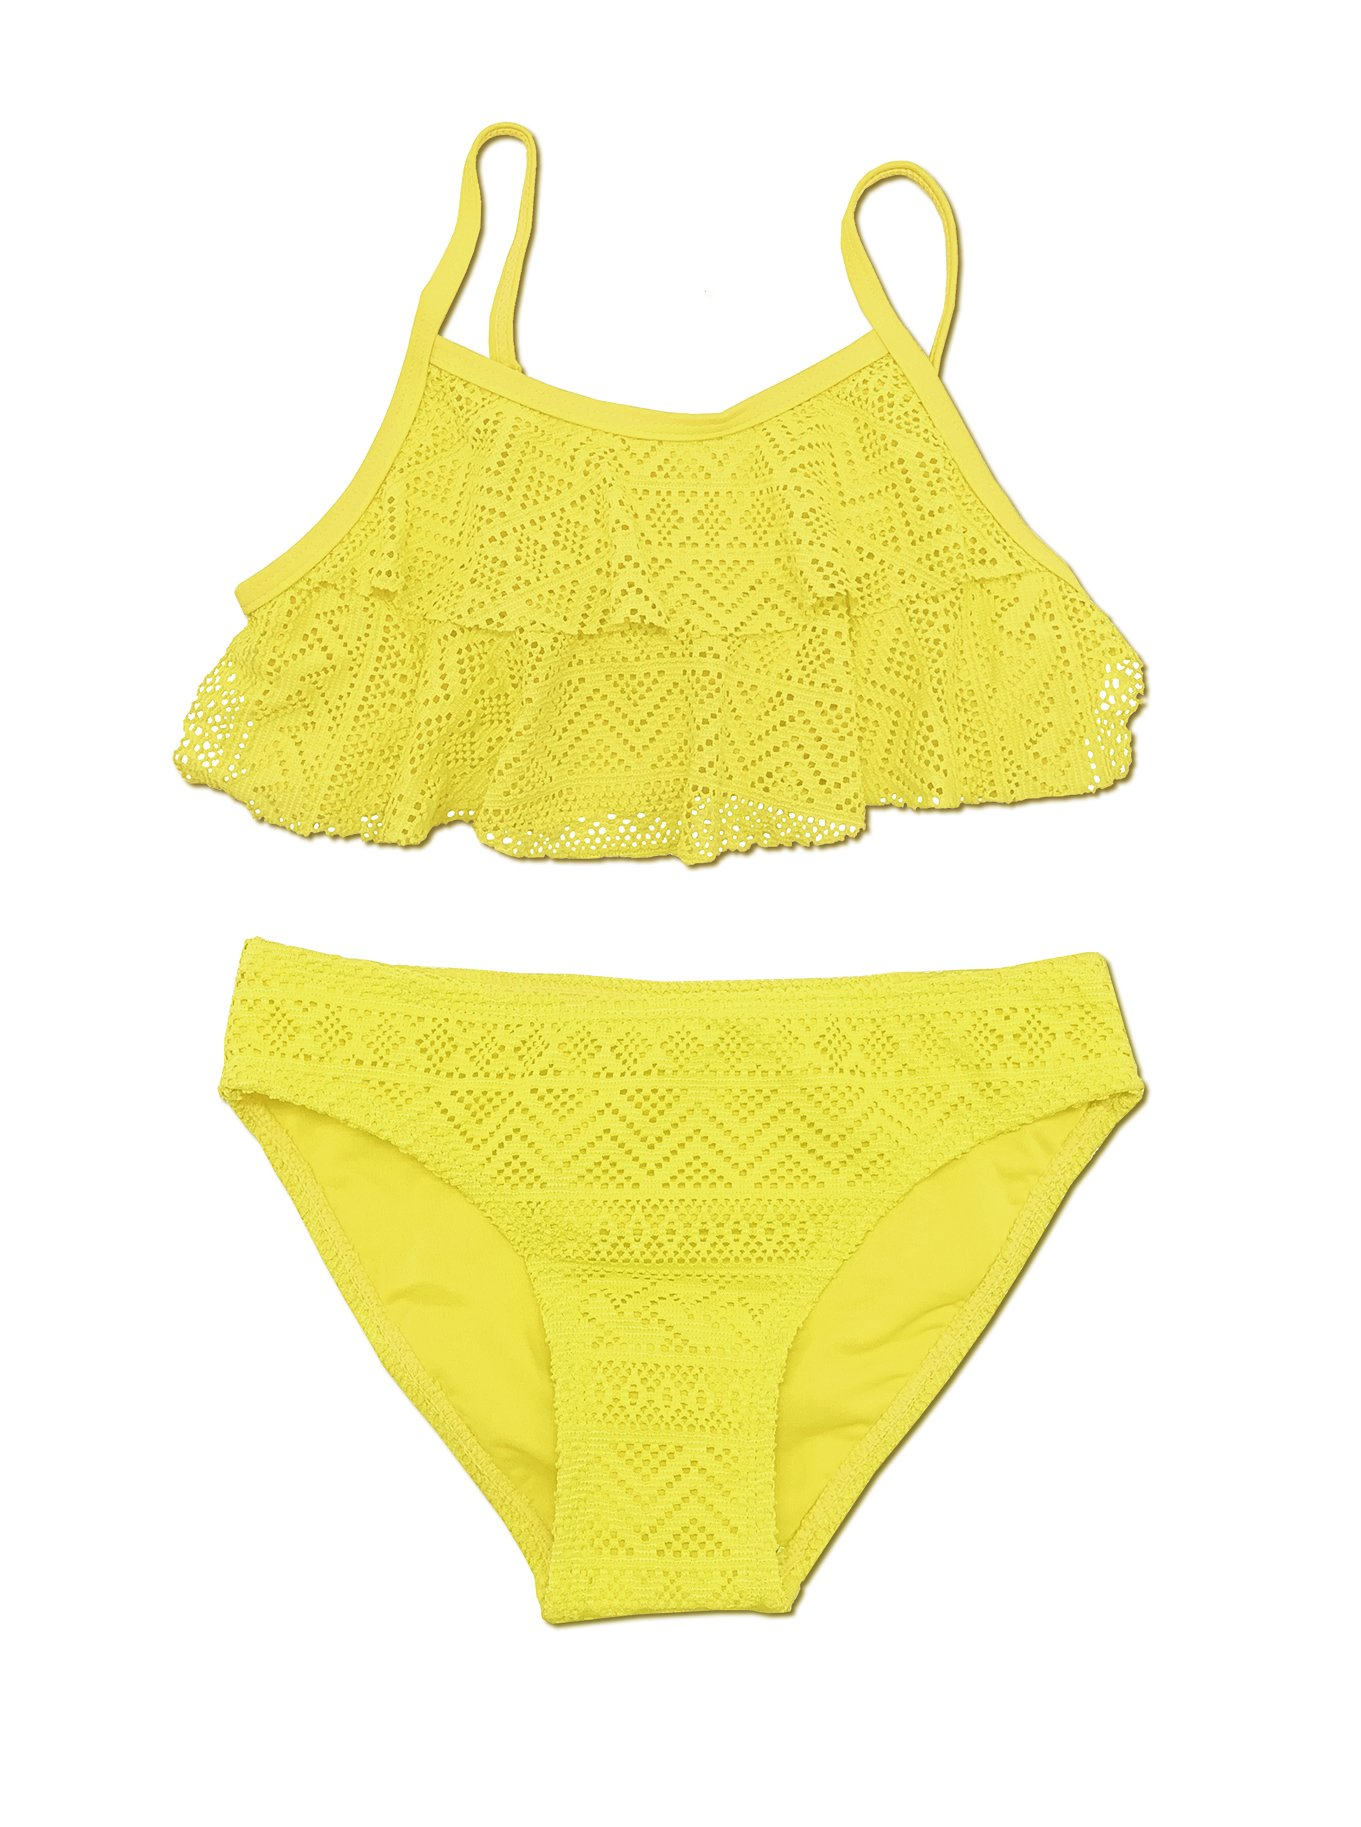 6d1030df20524c Galleon - SHEKINI Girls Swimwear Flounce Crochet Two Piece Bikini Bathing  Suits (14-16 Years/(170-176 Cm), Lily Yellow)